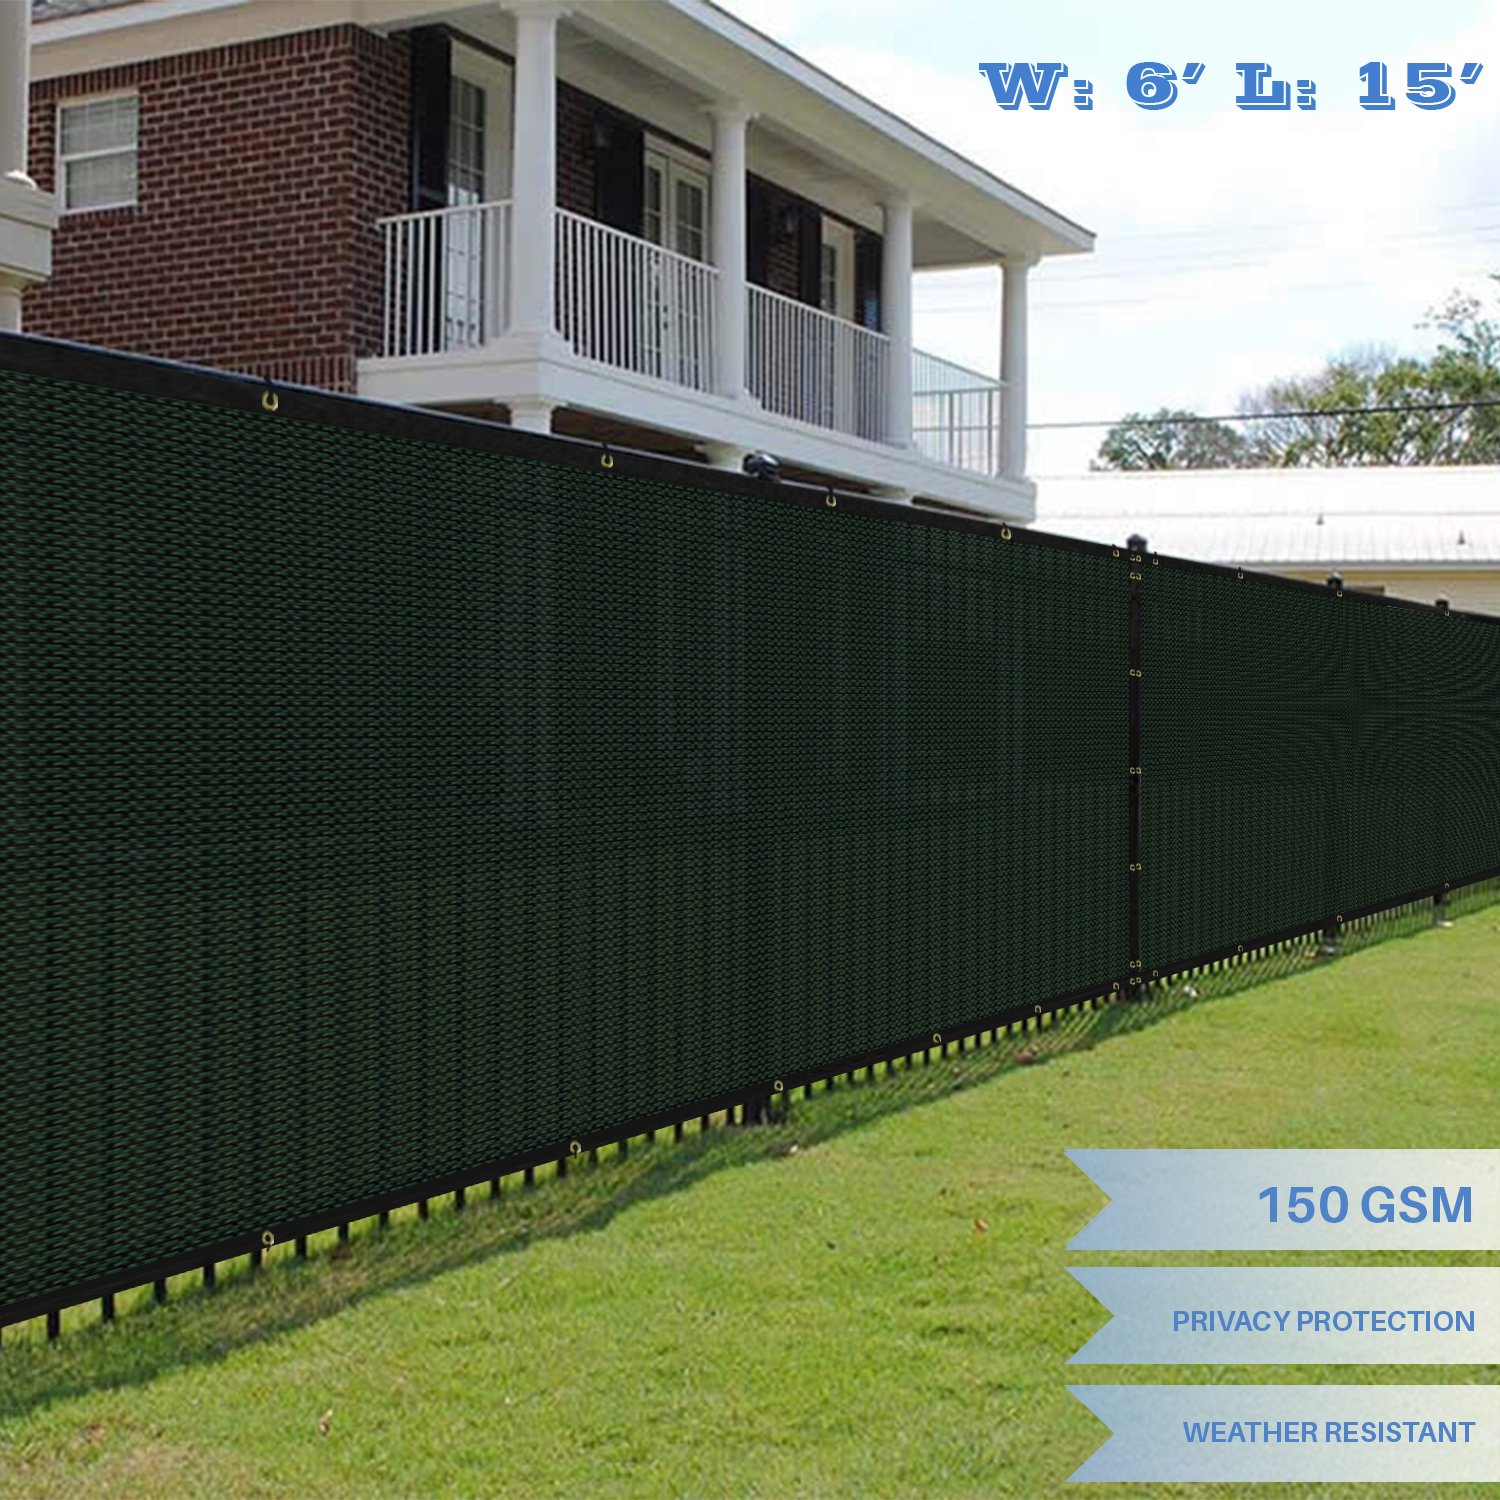 E&K Sunrise 6' x 15' Green Fence Privacy Screen, Commercial Outdoor Backyard Shade Windscreen Mesh Fabric 3 Years Warranty (Customized Set of 1